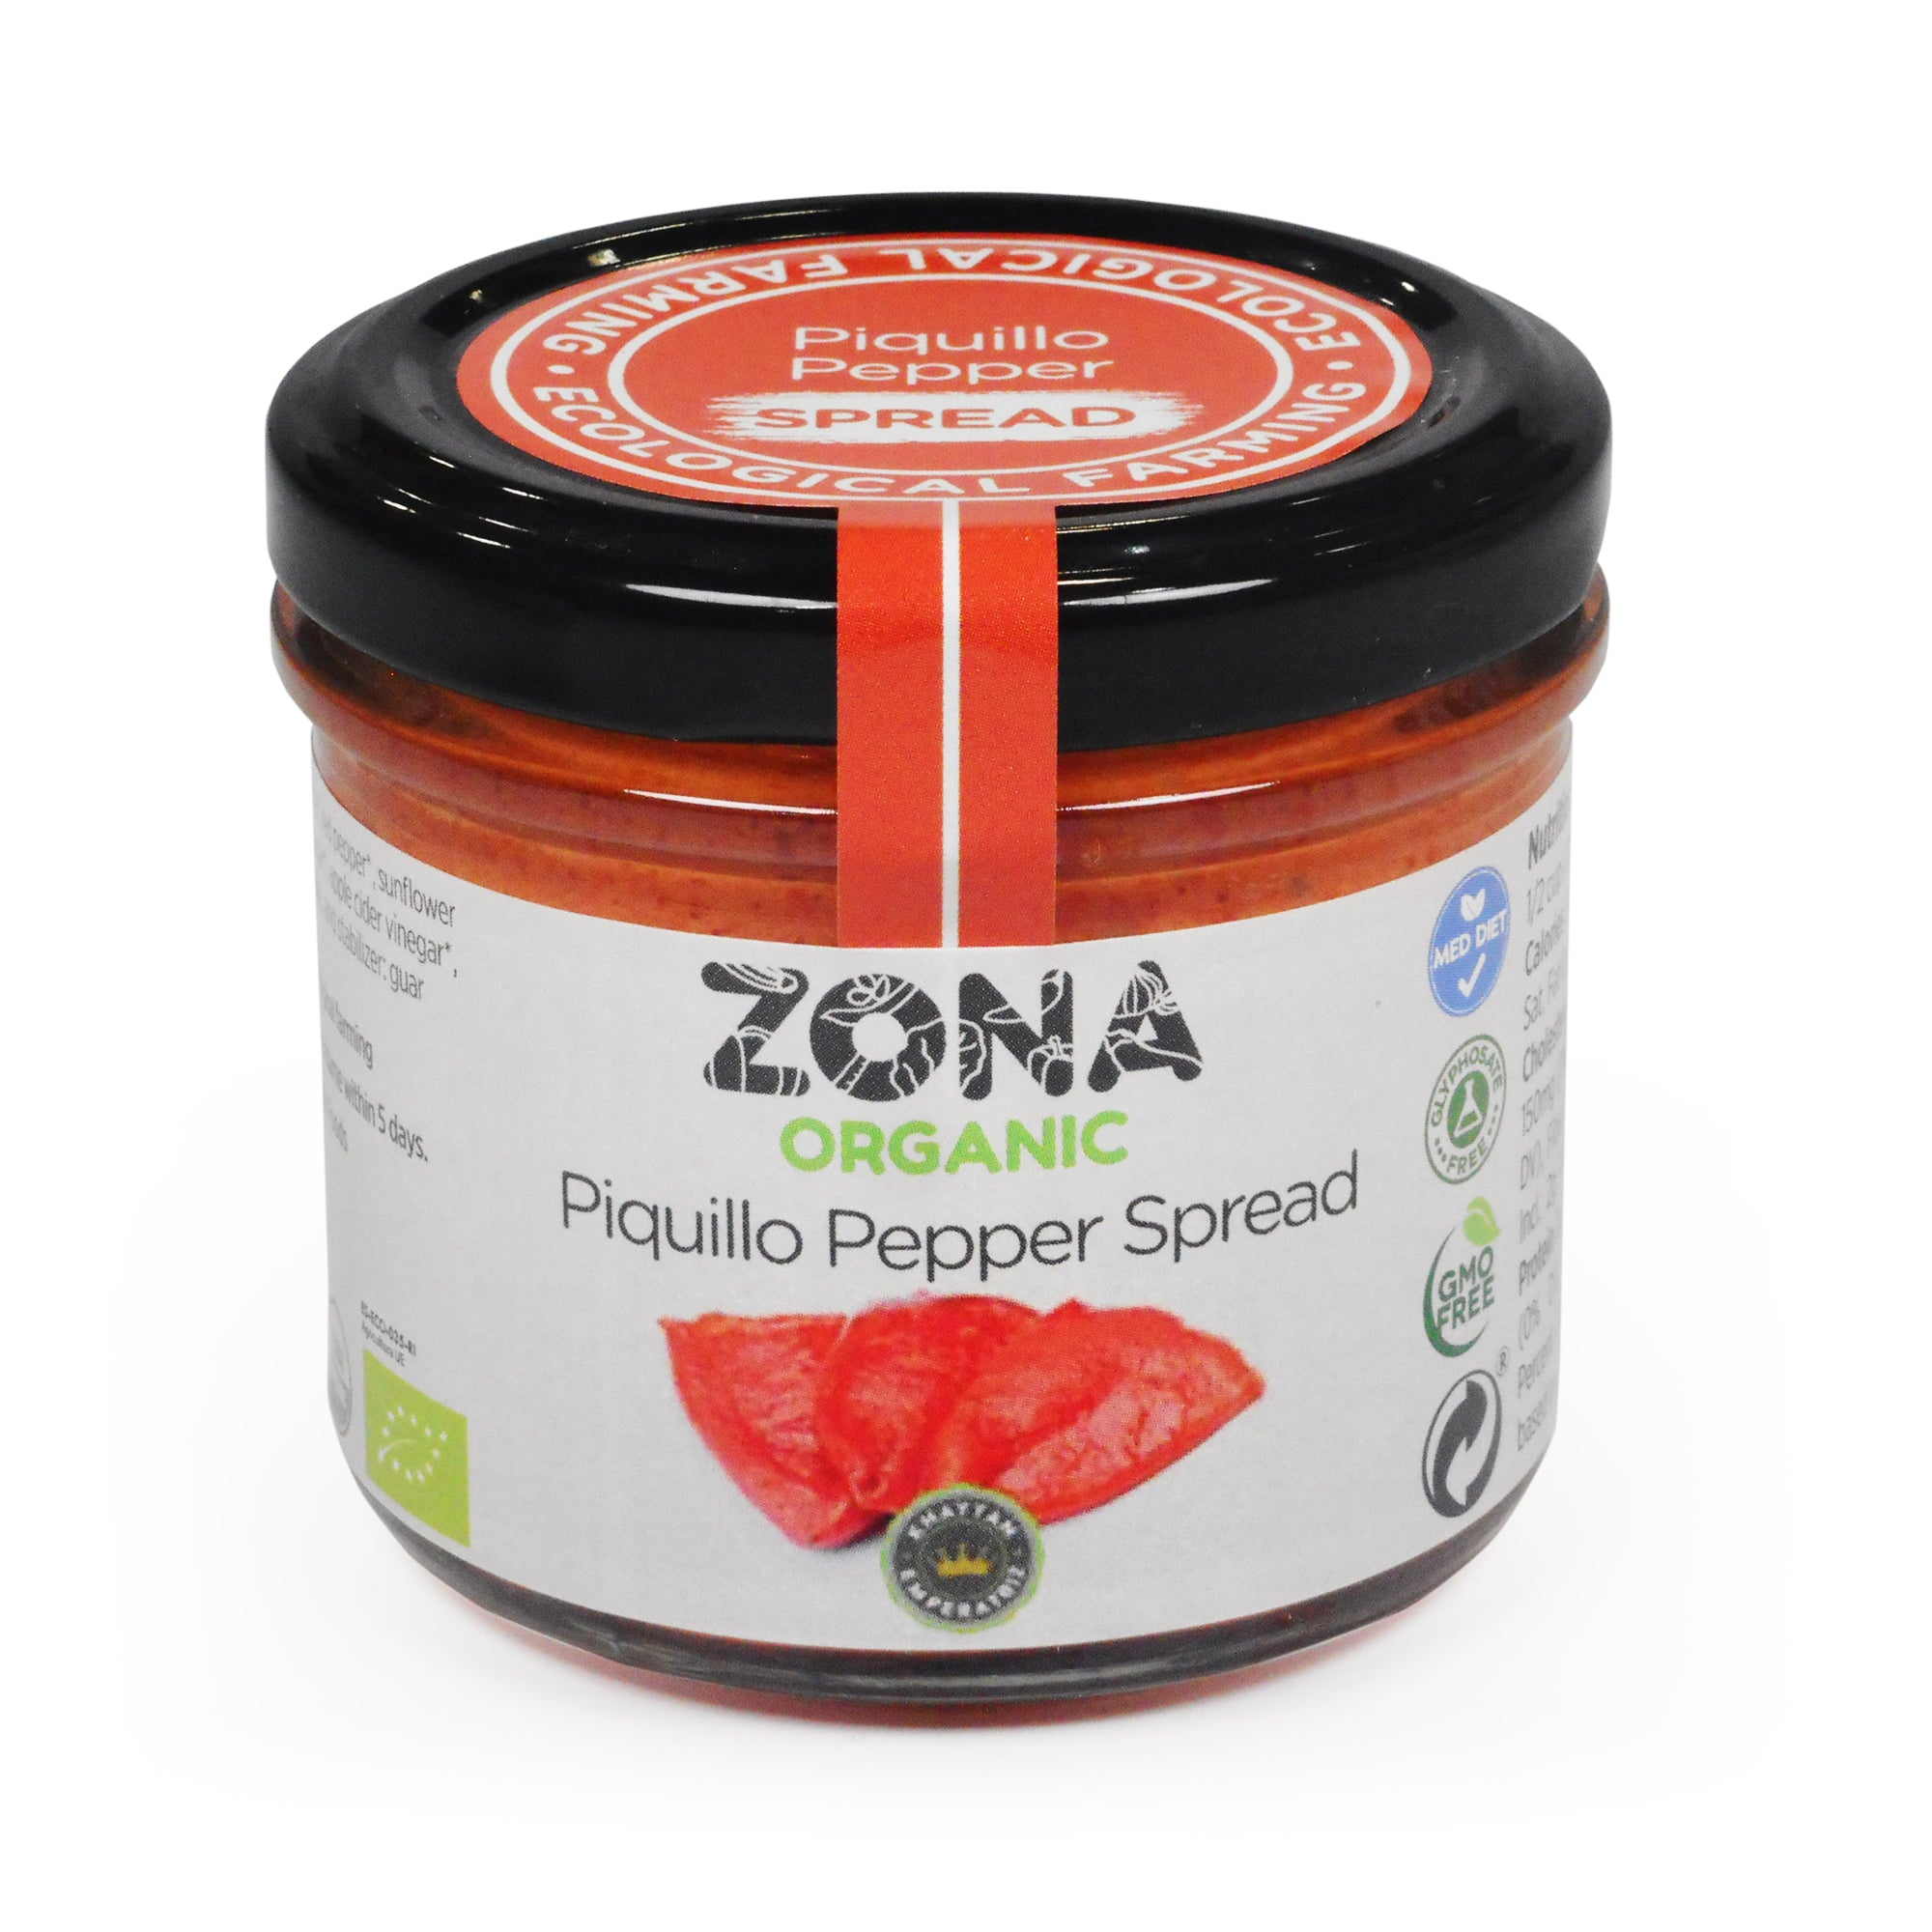 Organic Vegetable Spread